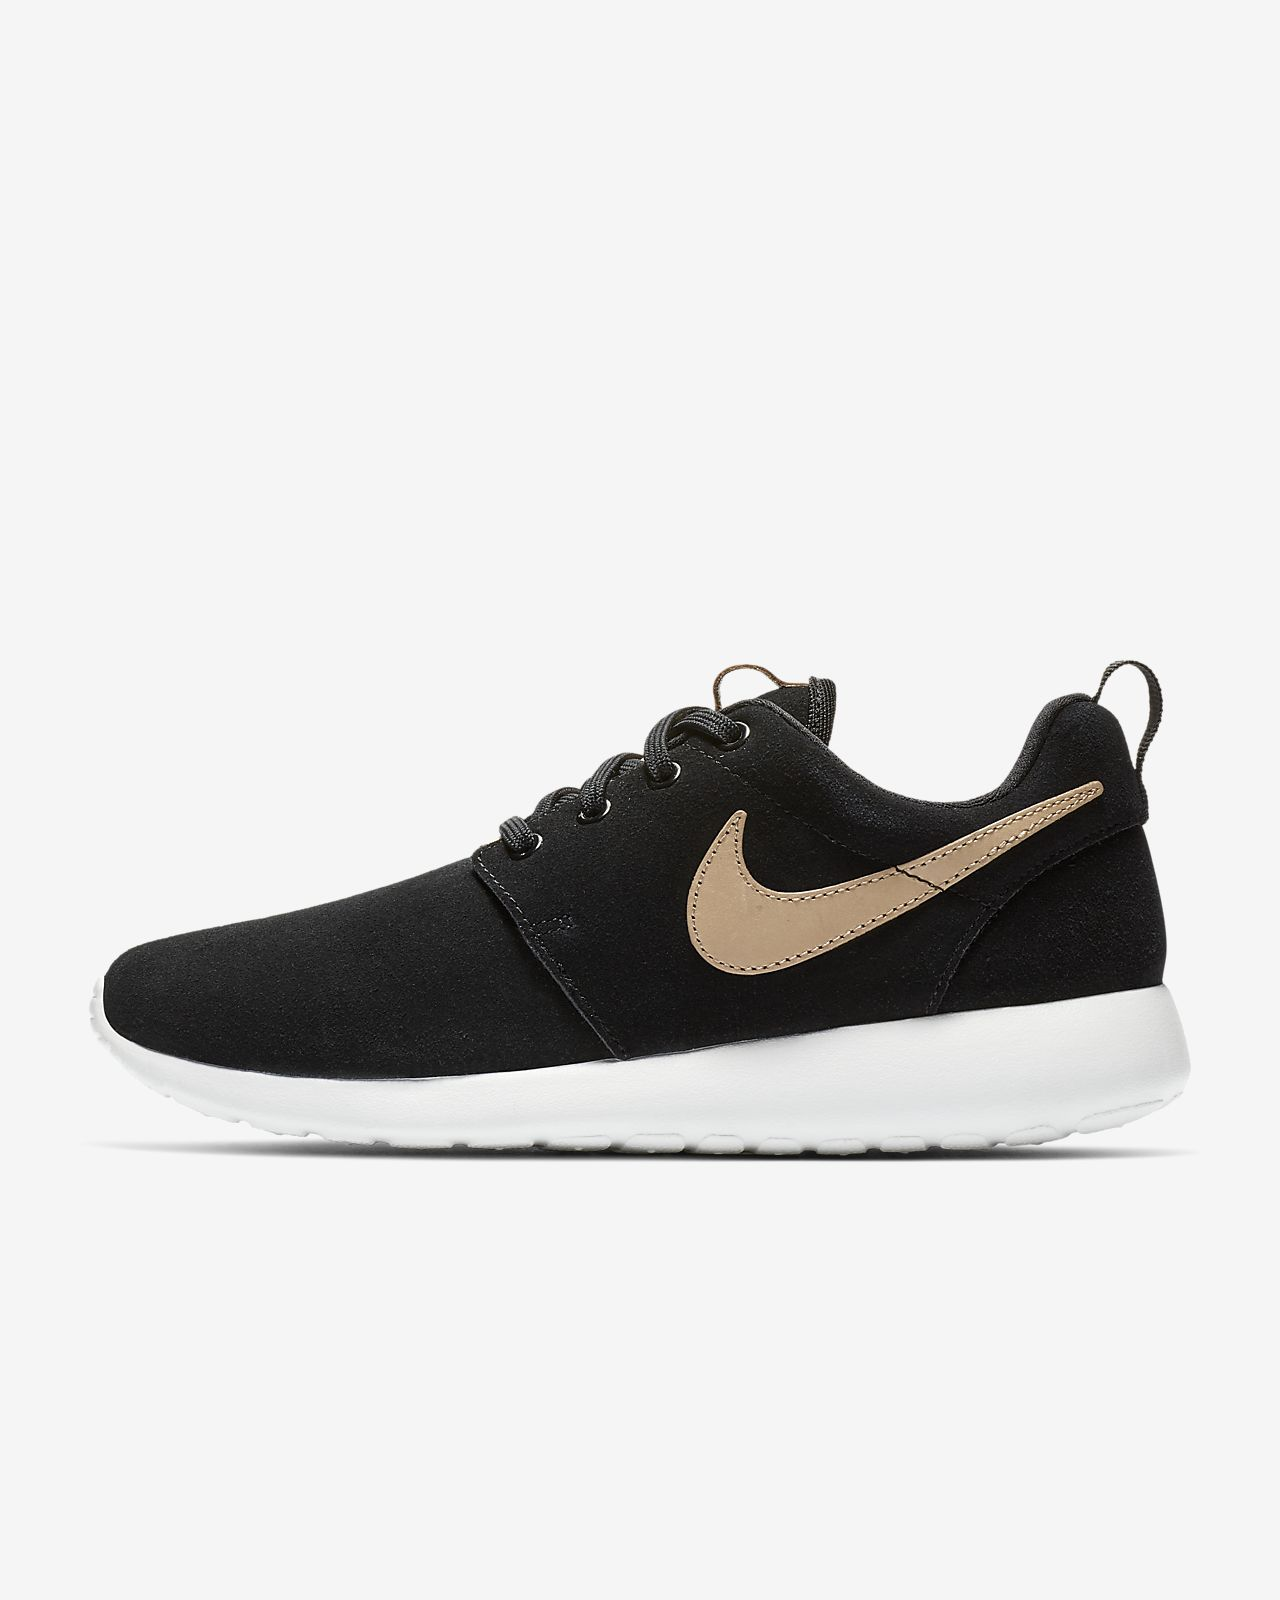 huge discount 101d0 3a291 ... Nike Roshe One Premium Women s Shoe